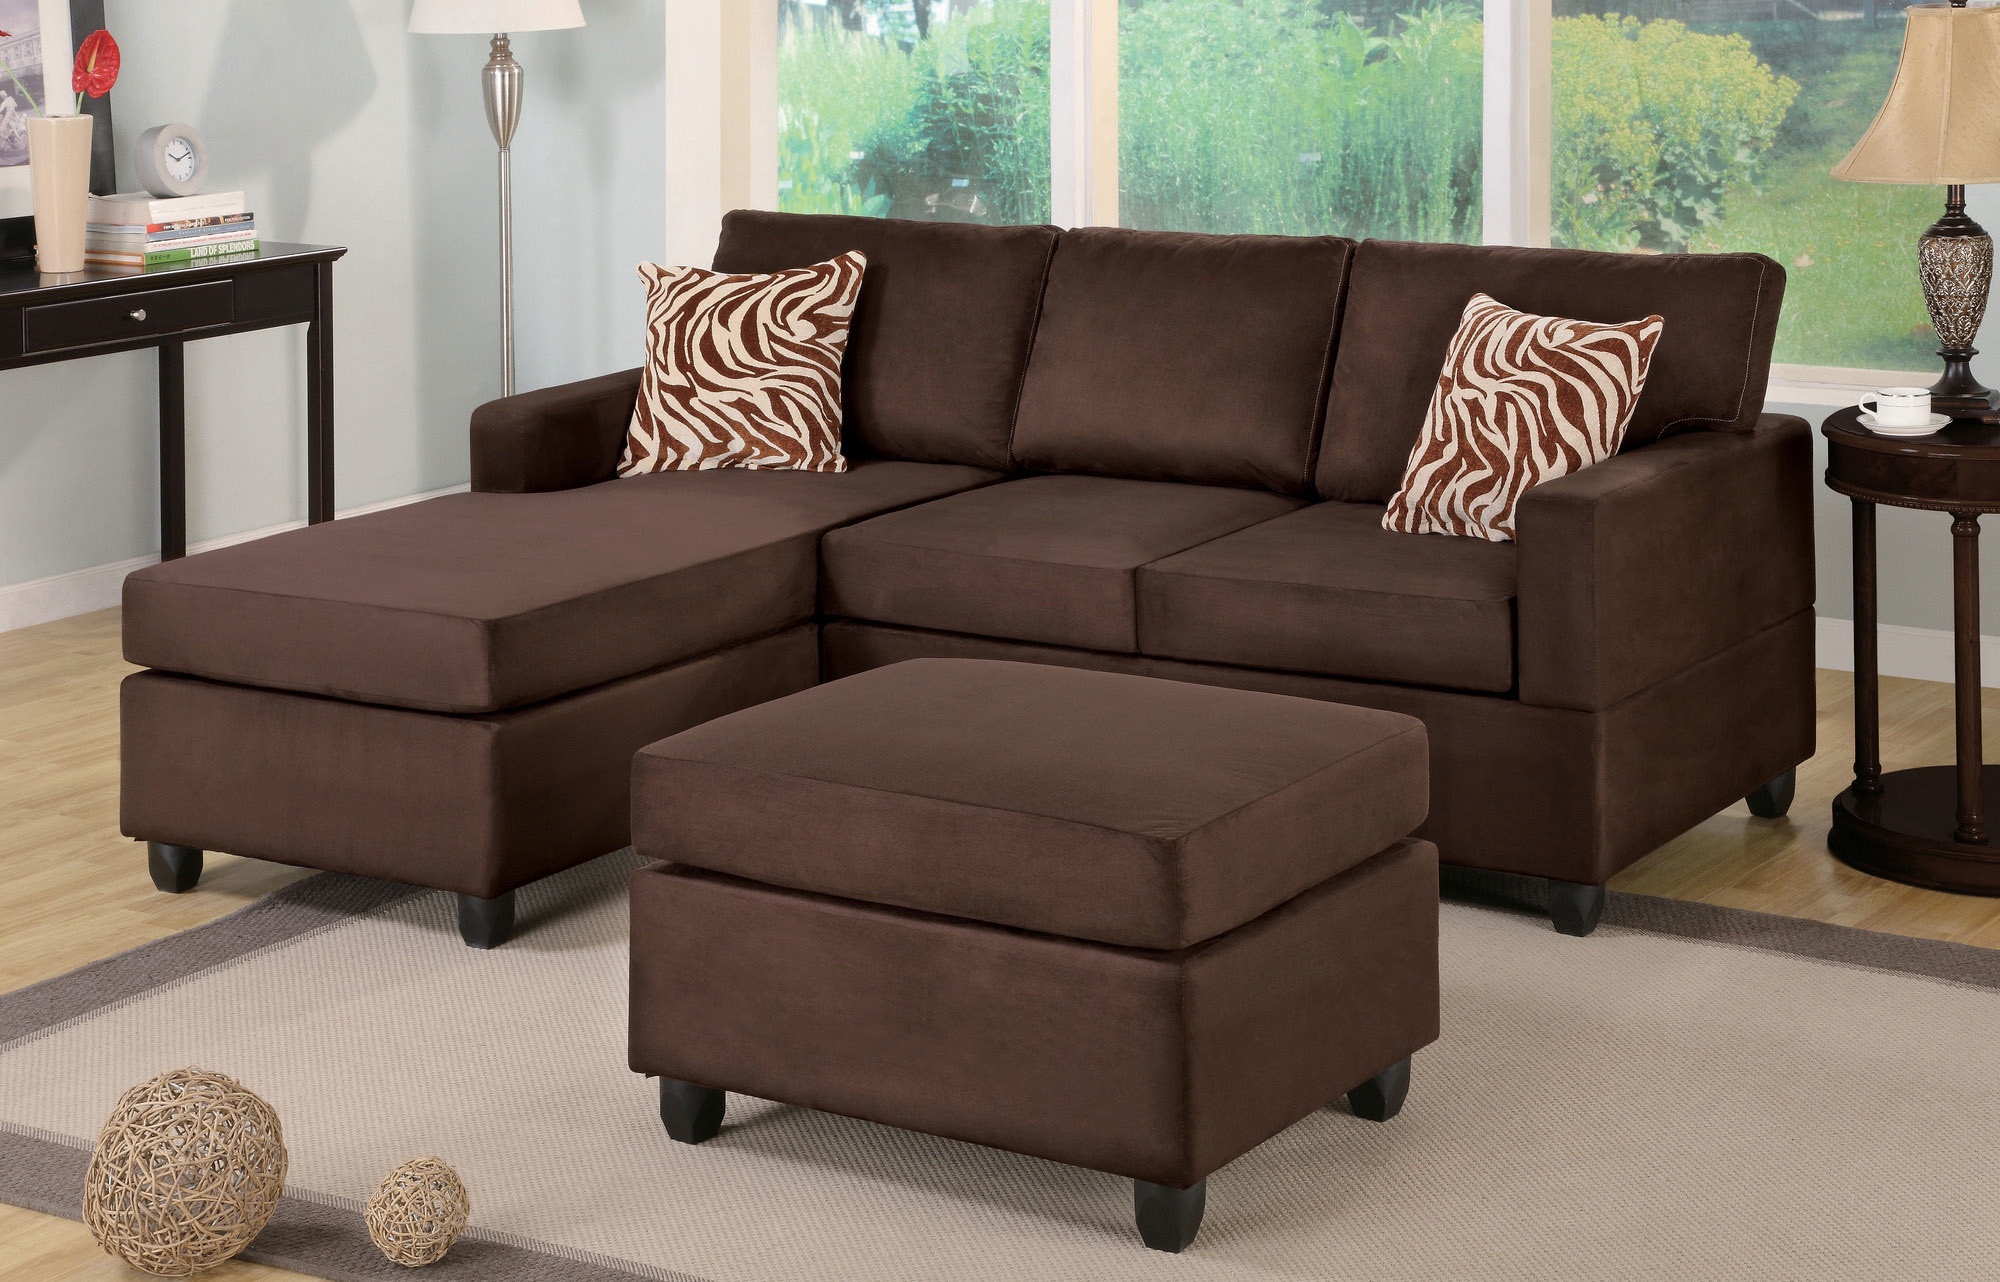 Cute Couch Covers with Cushions for Sectionals  for Living Room: Great Couch Covers With Cushions For Sectionals  For Living Room With Furniture Covers For Sectionals